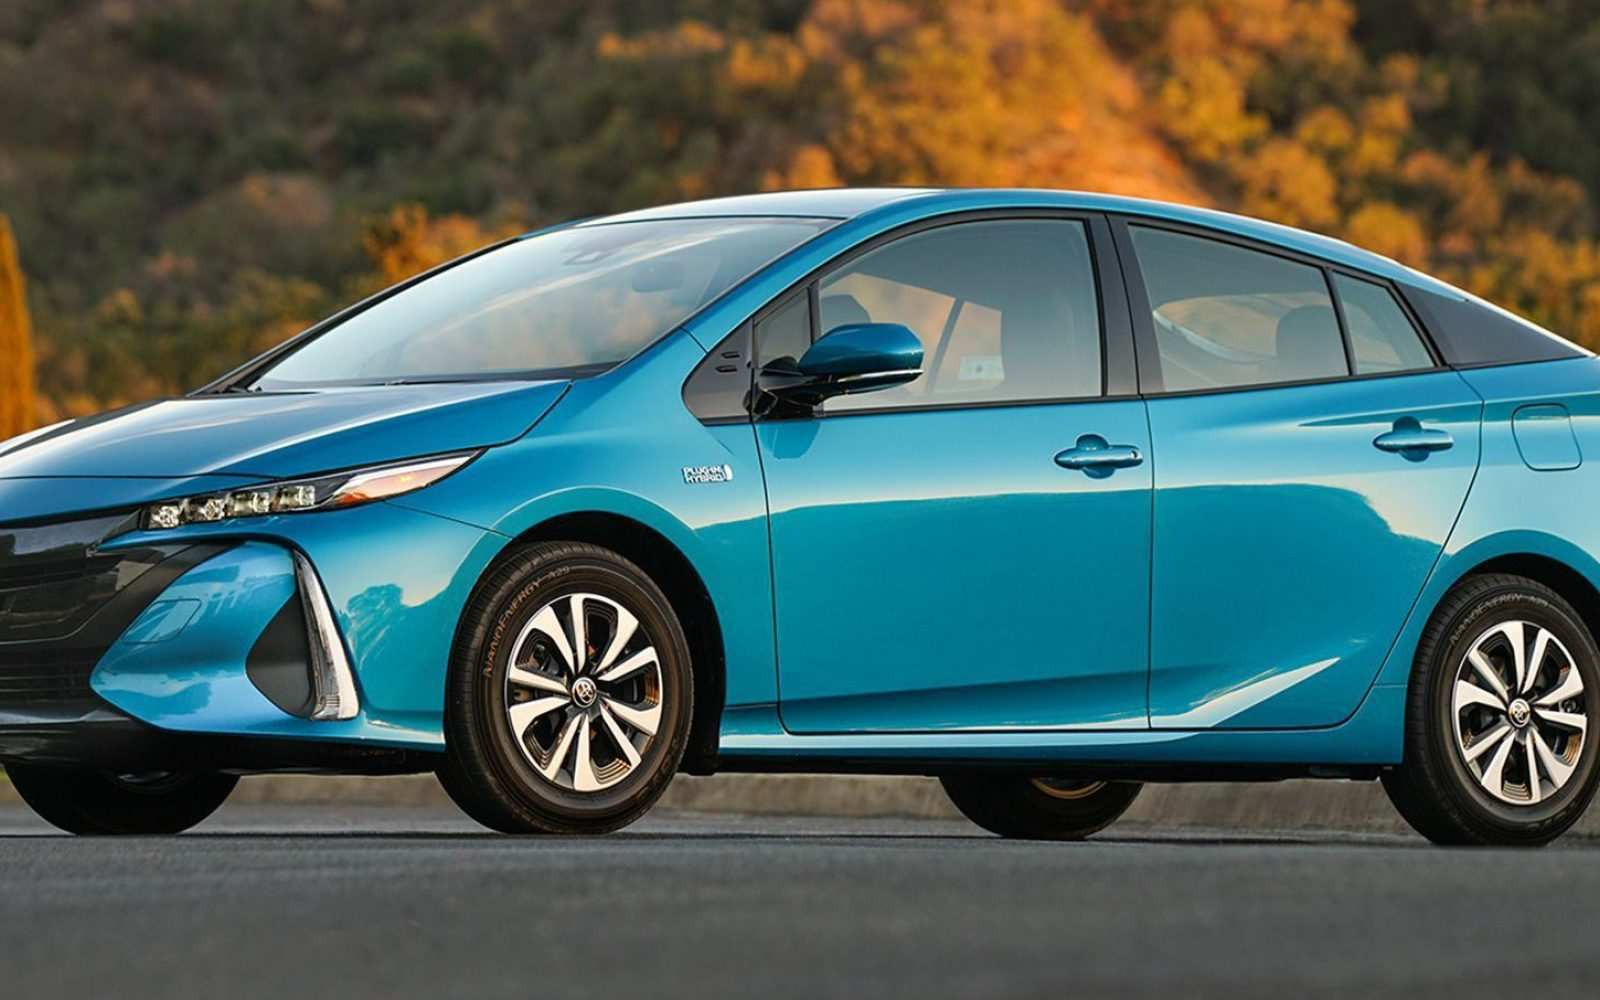 22 Best Review 2020 Toyota Electric Car Release Date with 2020 Toyota Electric Car